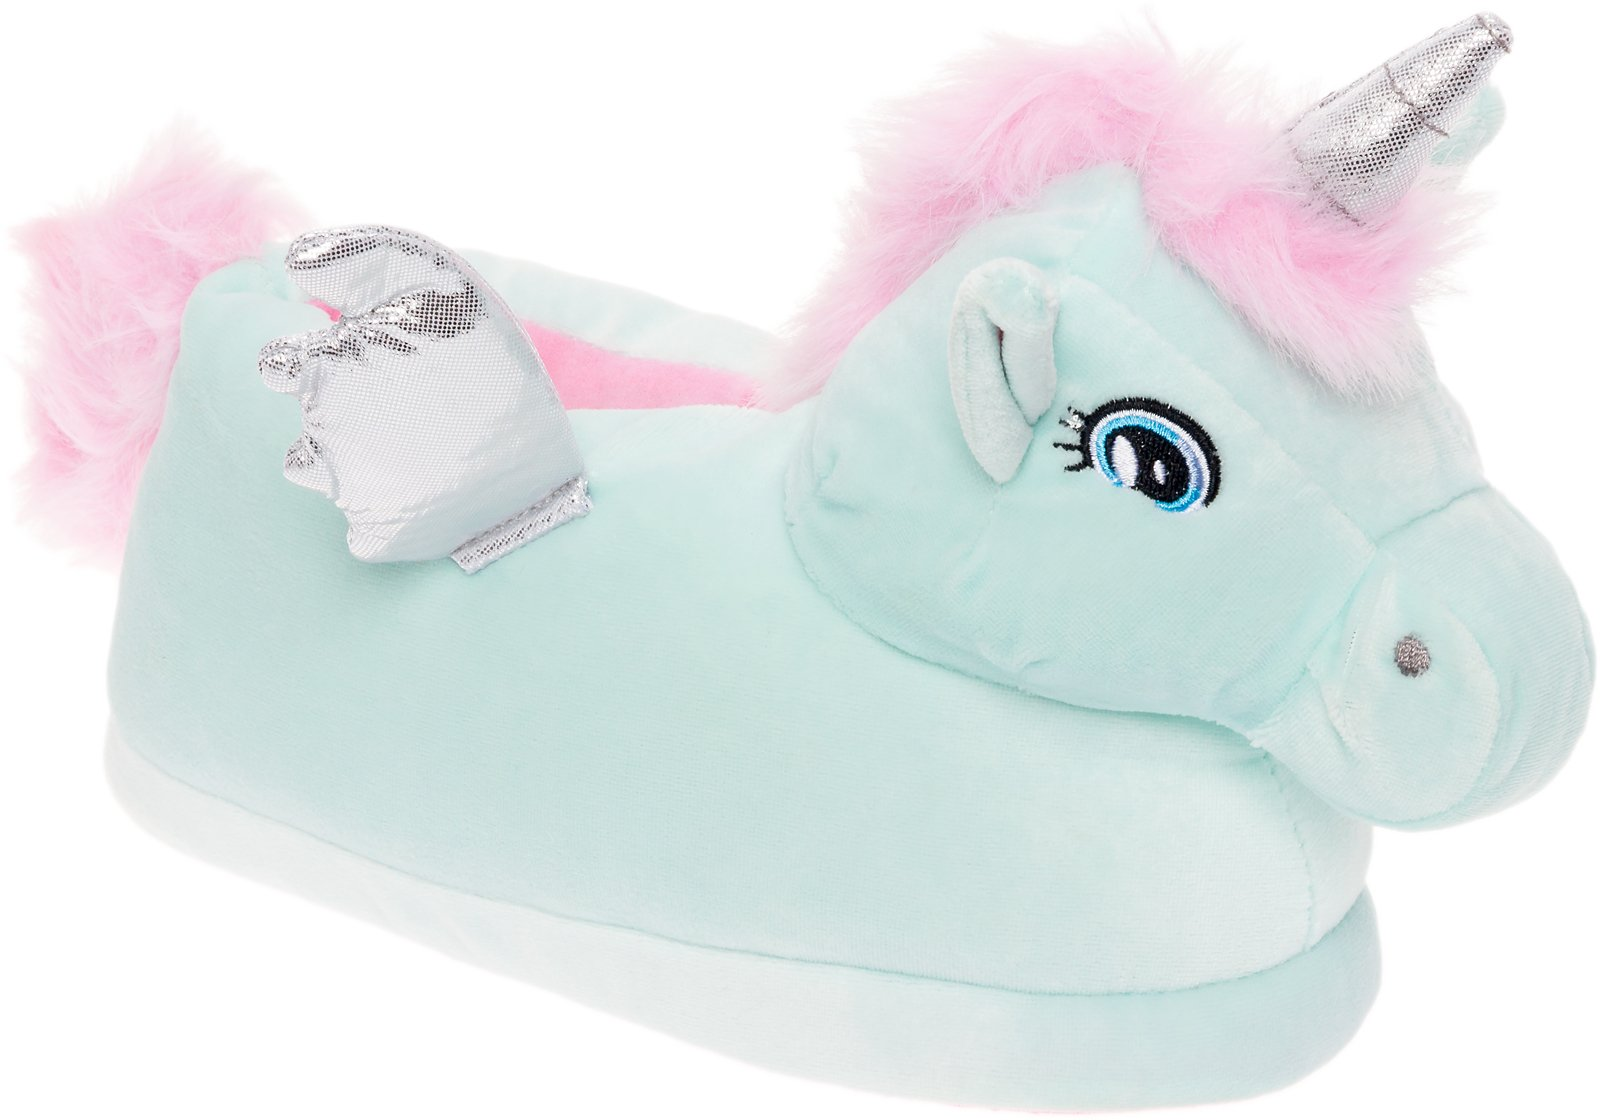 Silver Lilly Pegasus Slippers - Plush Animal Slippers w/Comfort Foam Support by (Blue, Large)